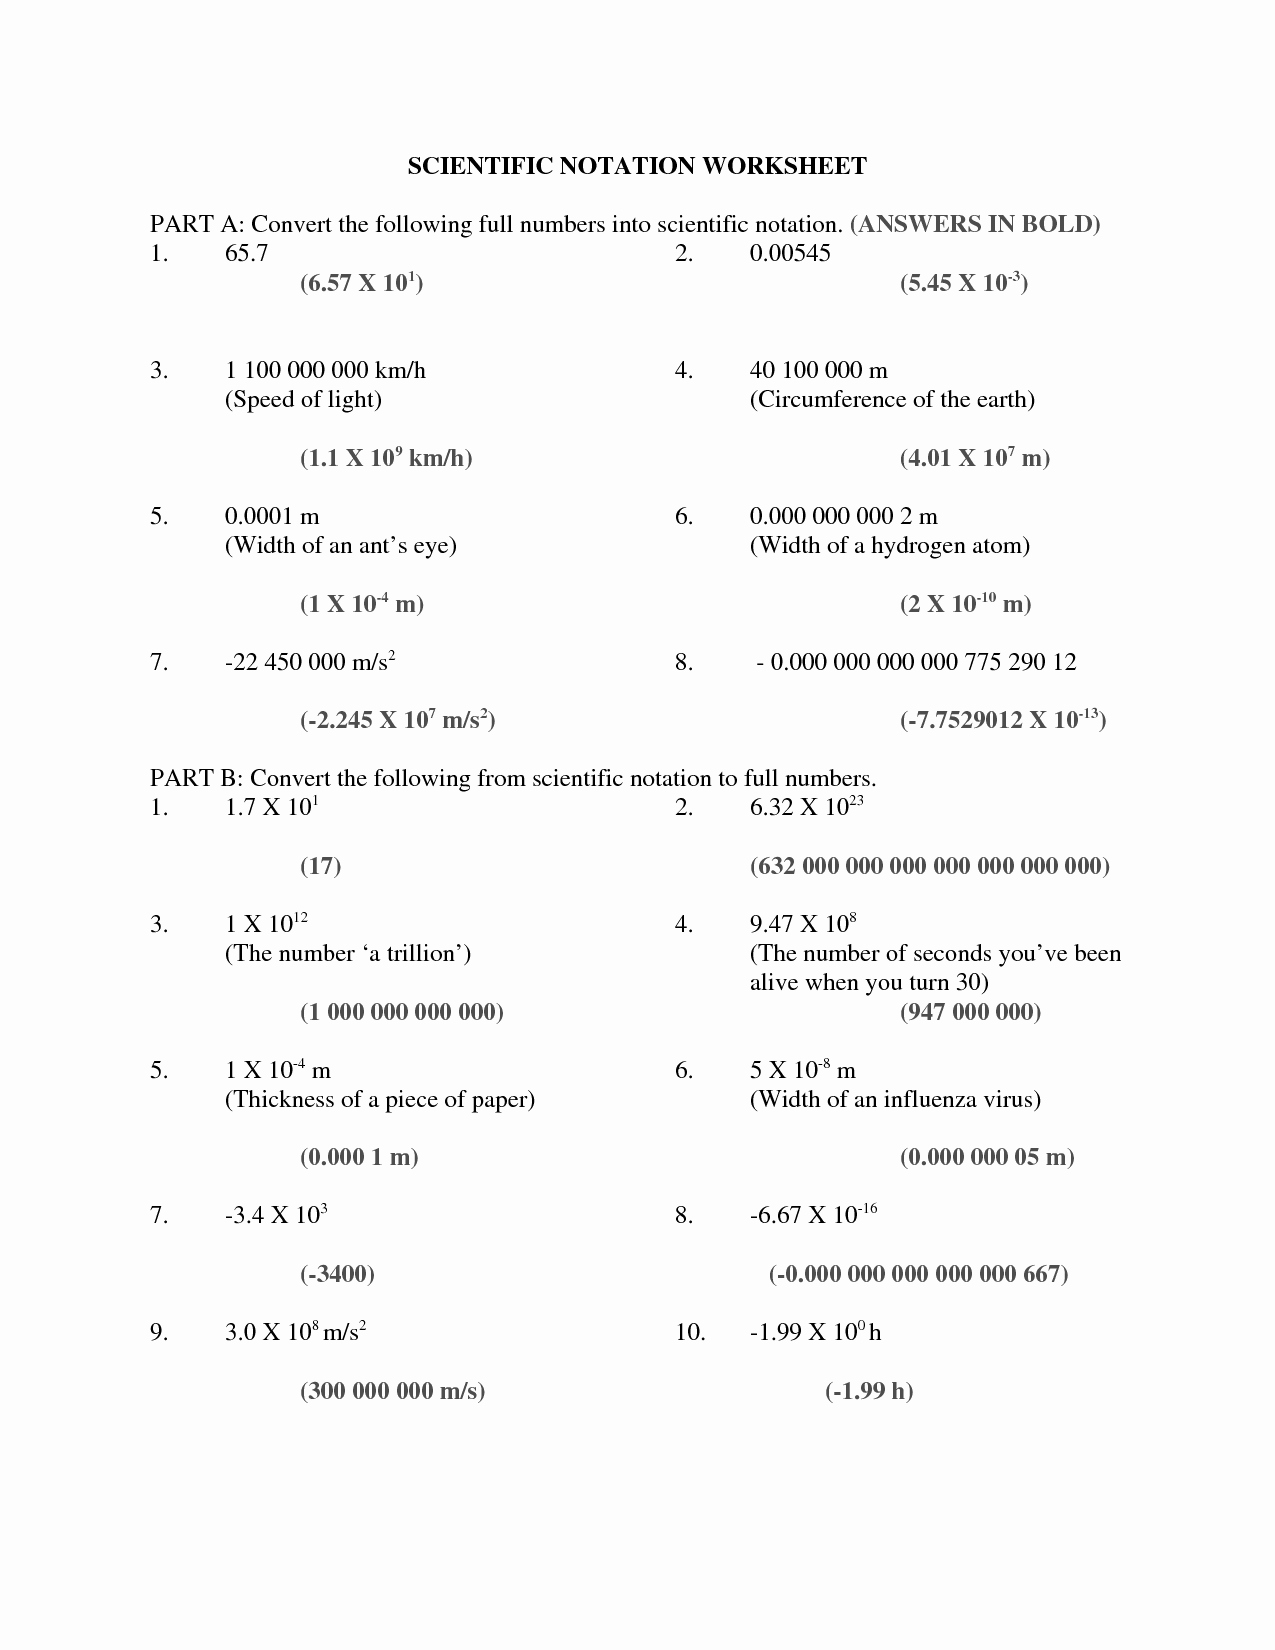 Scientific Notation Worksheet with Answers Inspirational 7 Best Of Speed Light Worksheet Waves Crest